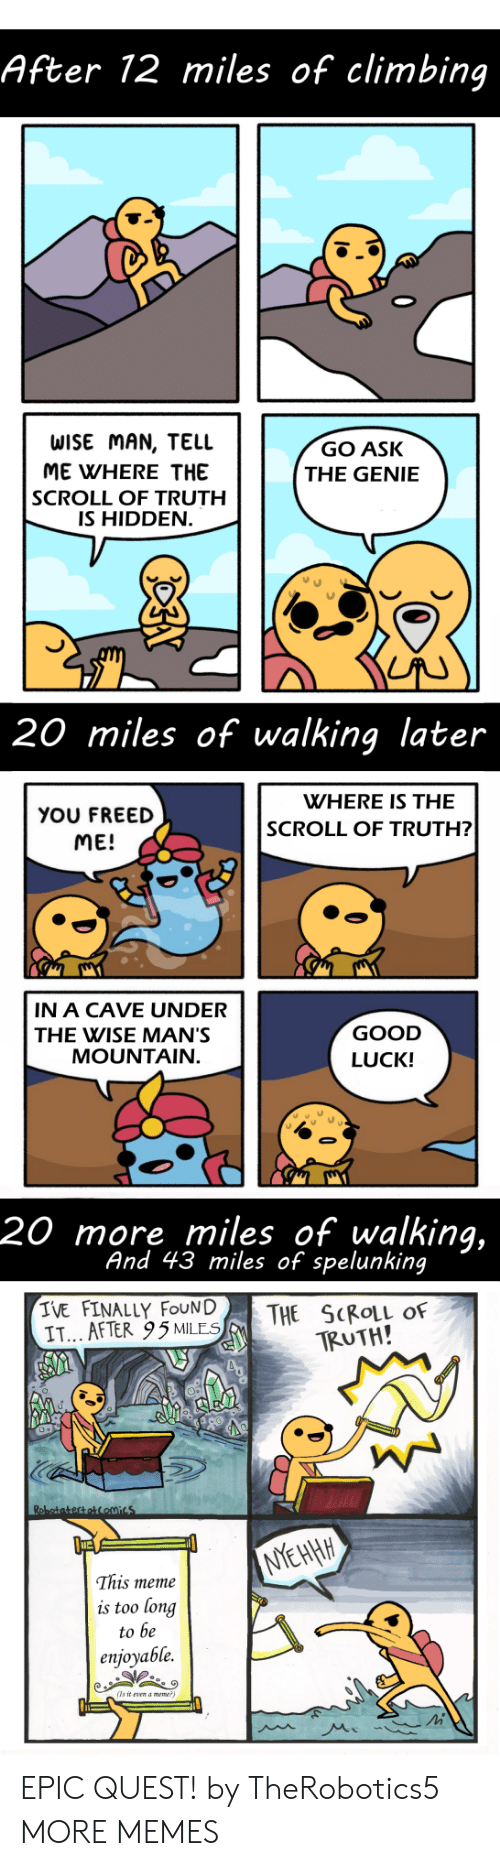 Wise Man: After 12 miles of climbing  WISE MAN, TELL  ME WHERE THE  SCROLL OF TRUTH  IS HIDDEN  GO ASK  THE GENIE  20 miles of walking later  WHERE IS THE  YOU FREED  ME!  SCROLL OF TRUTH?  IN A CAVE UNDER  THE WISE MAN'S  GOOD  LUCK!  MOUNTAIN  20 more miles of walking,  And 43 miles of spelunking  IVE FINALLY FOUN|  IT... AFTER 95MLES  THE SCROLL OF  TRUTH!  This meme  is too long  to be  enjoyable.  (Ts it vn a meme EPIC QUEST! by TheRobotics5 MORE MEMES